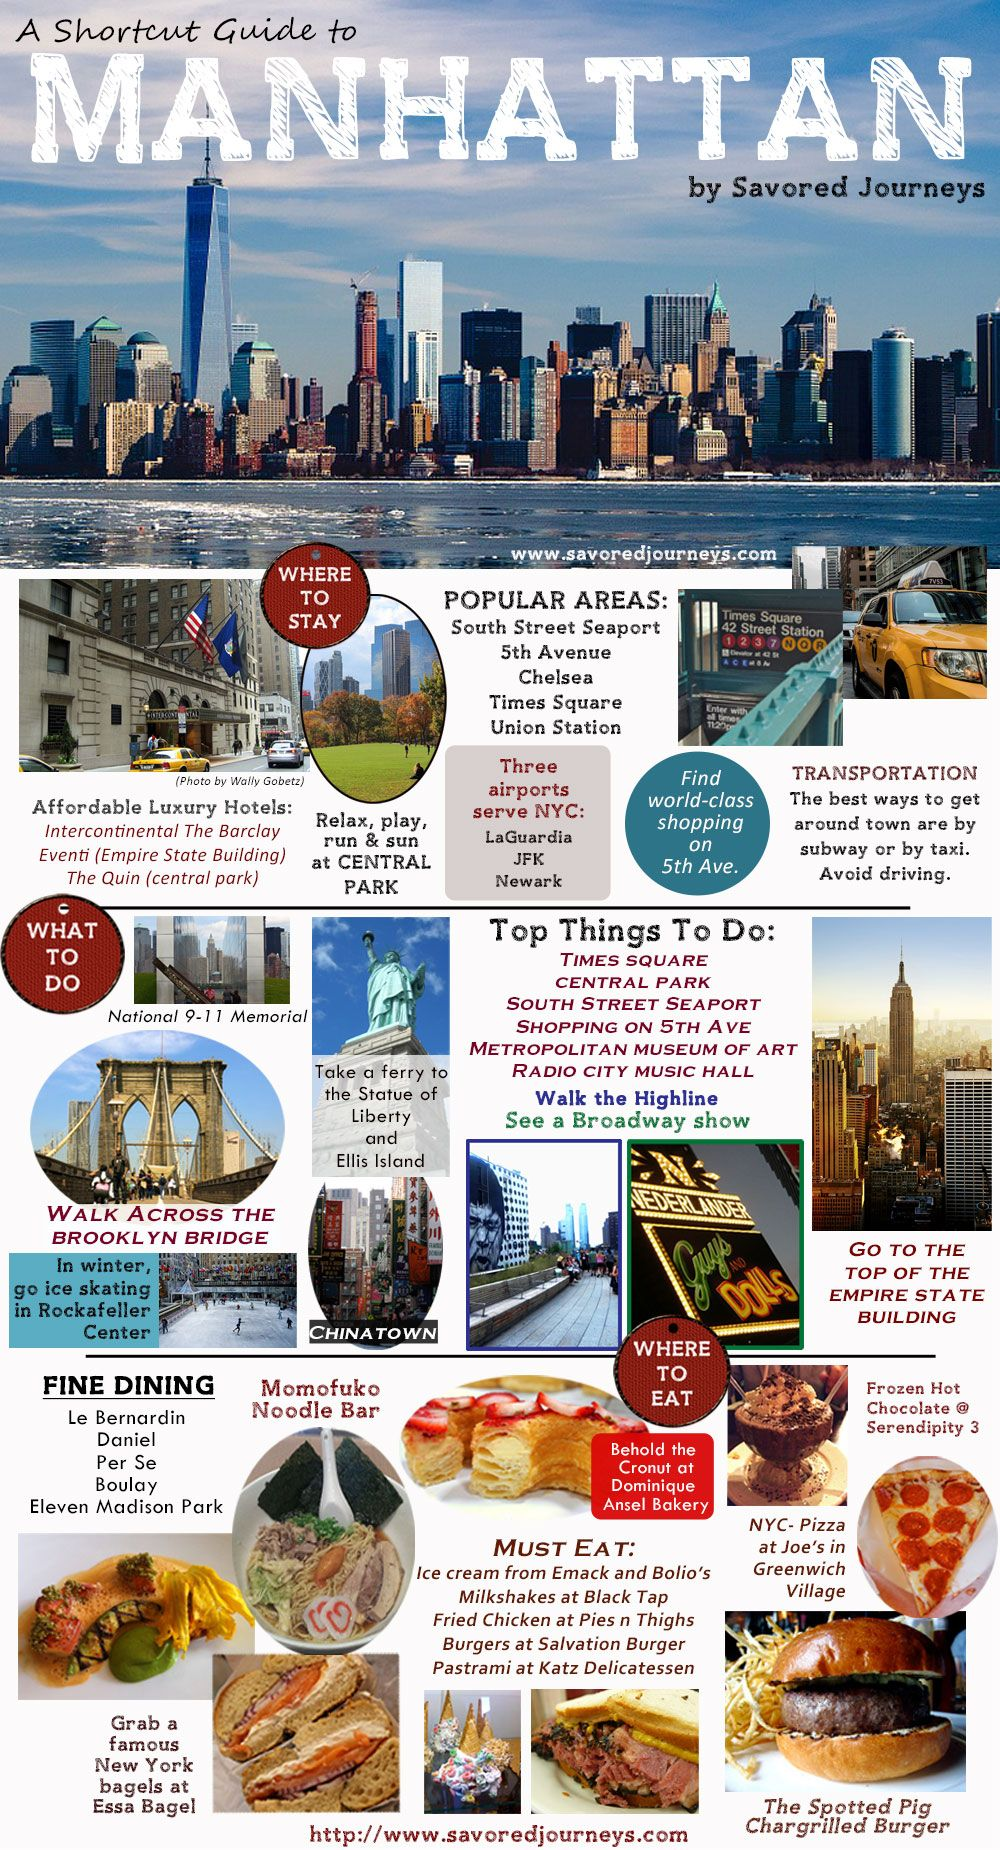 Shortcut travel guide to manhattan nyc savored journeys for Things to doin nyc